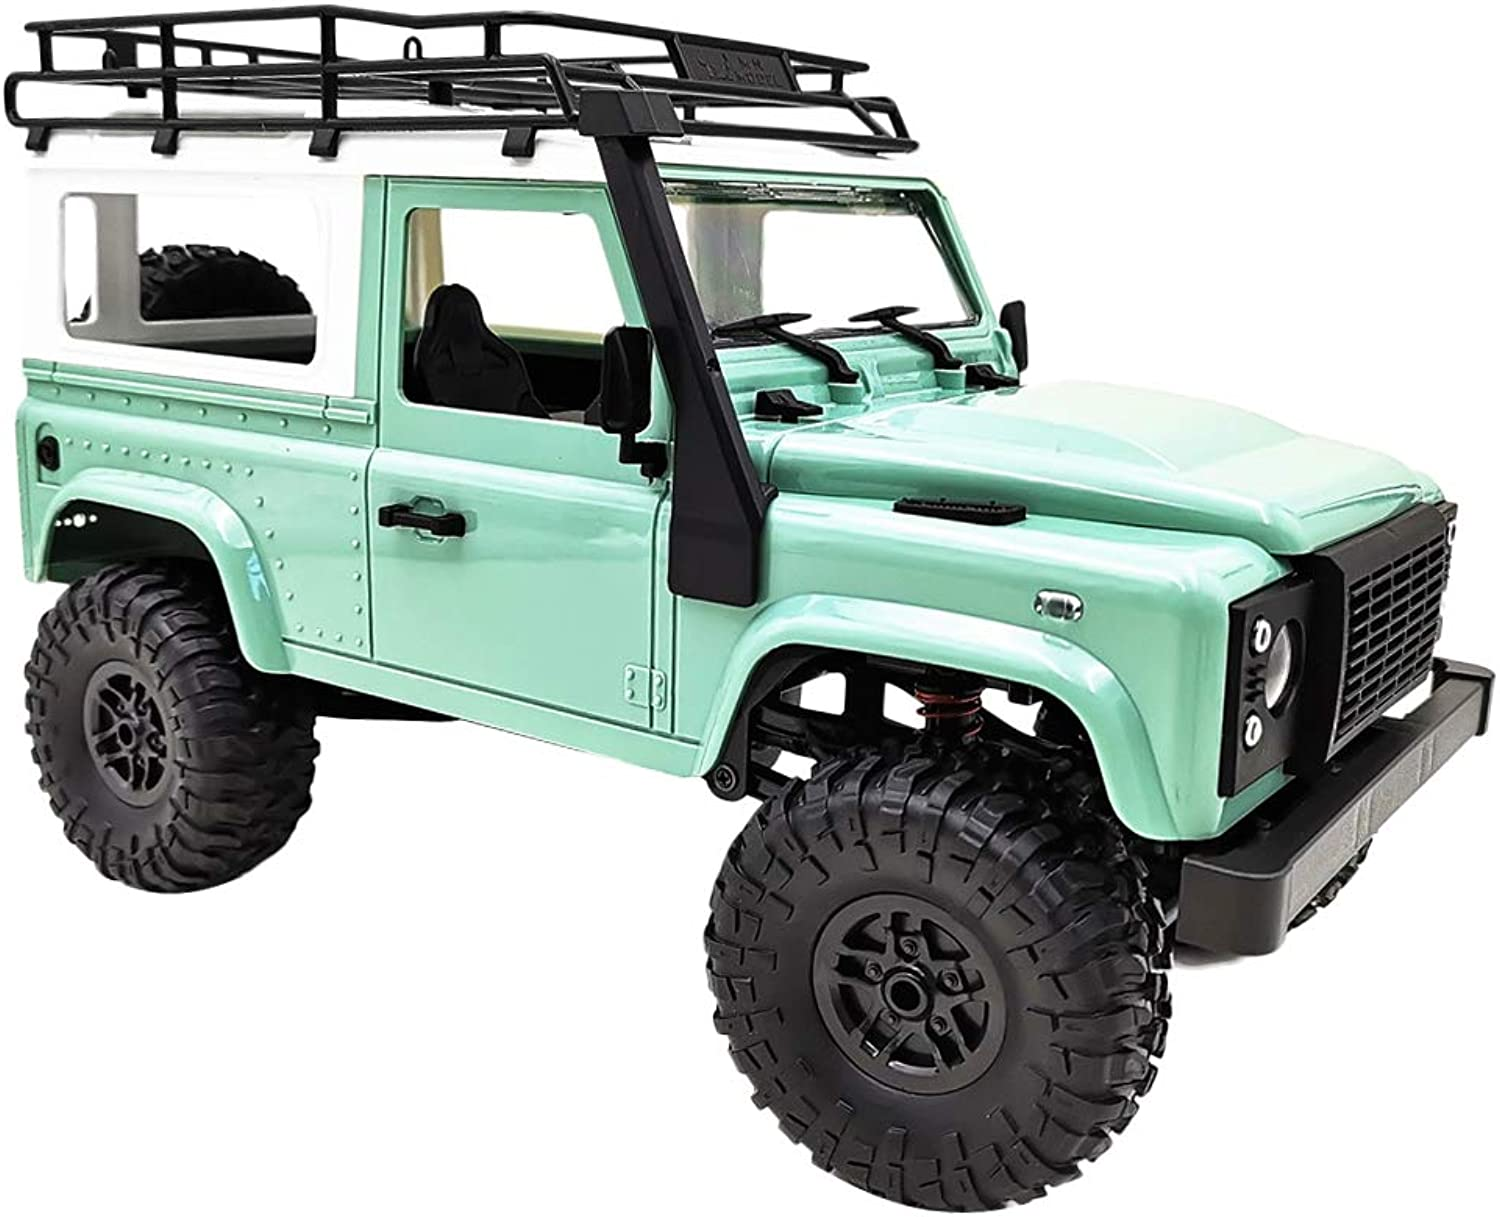 Fityle RC Model Car to Build Kits 1 12 Scale RC Crawler 4WD High Speed Pickup Toys Green